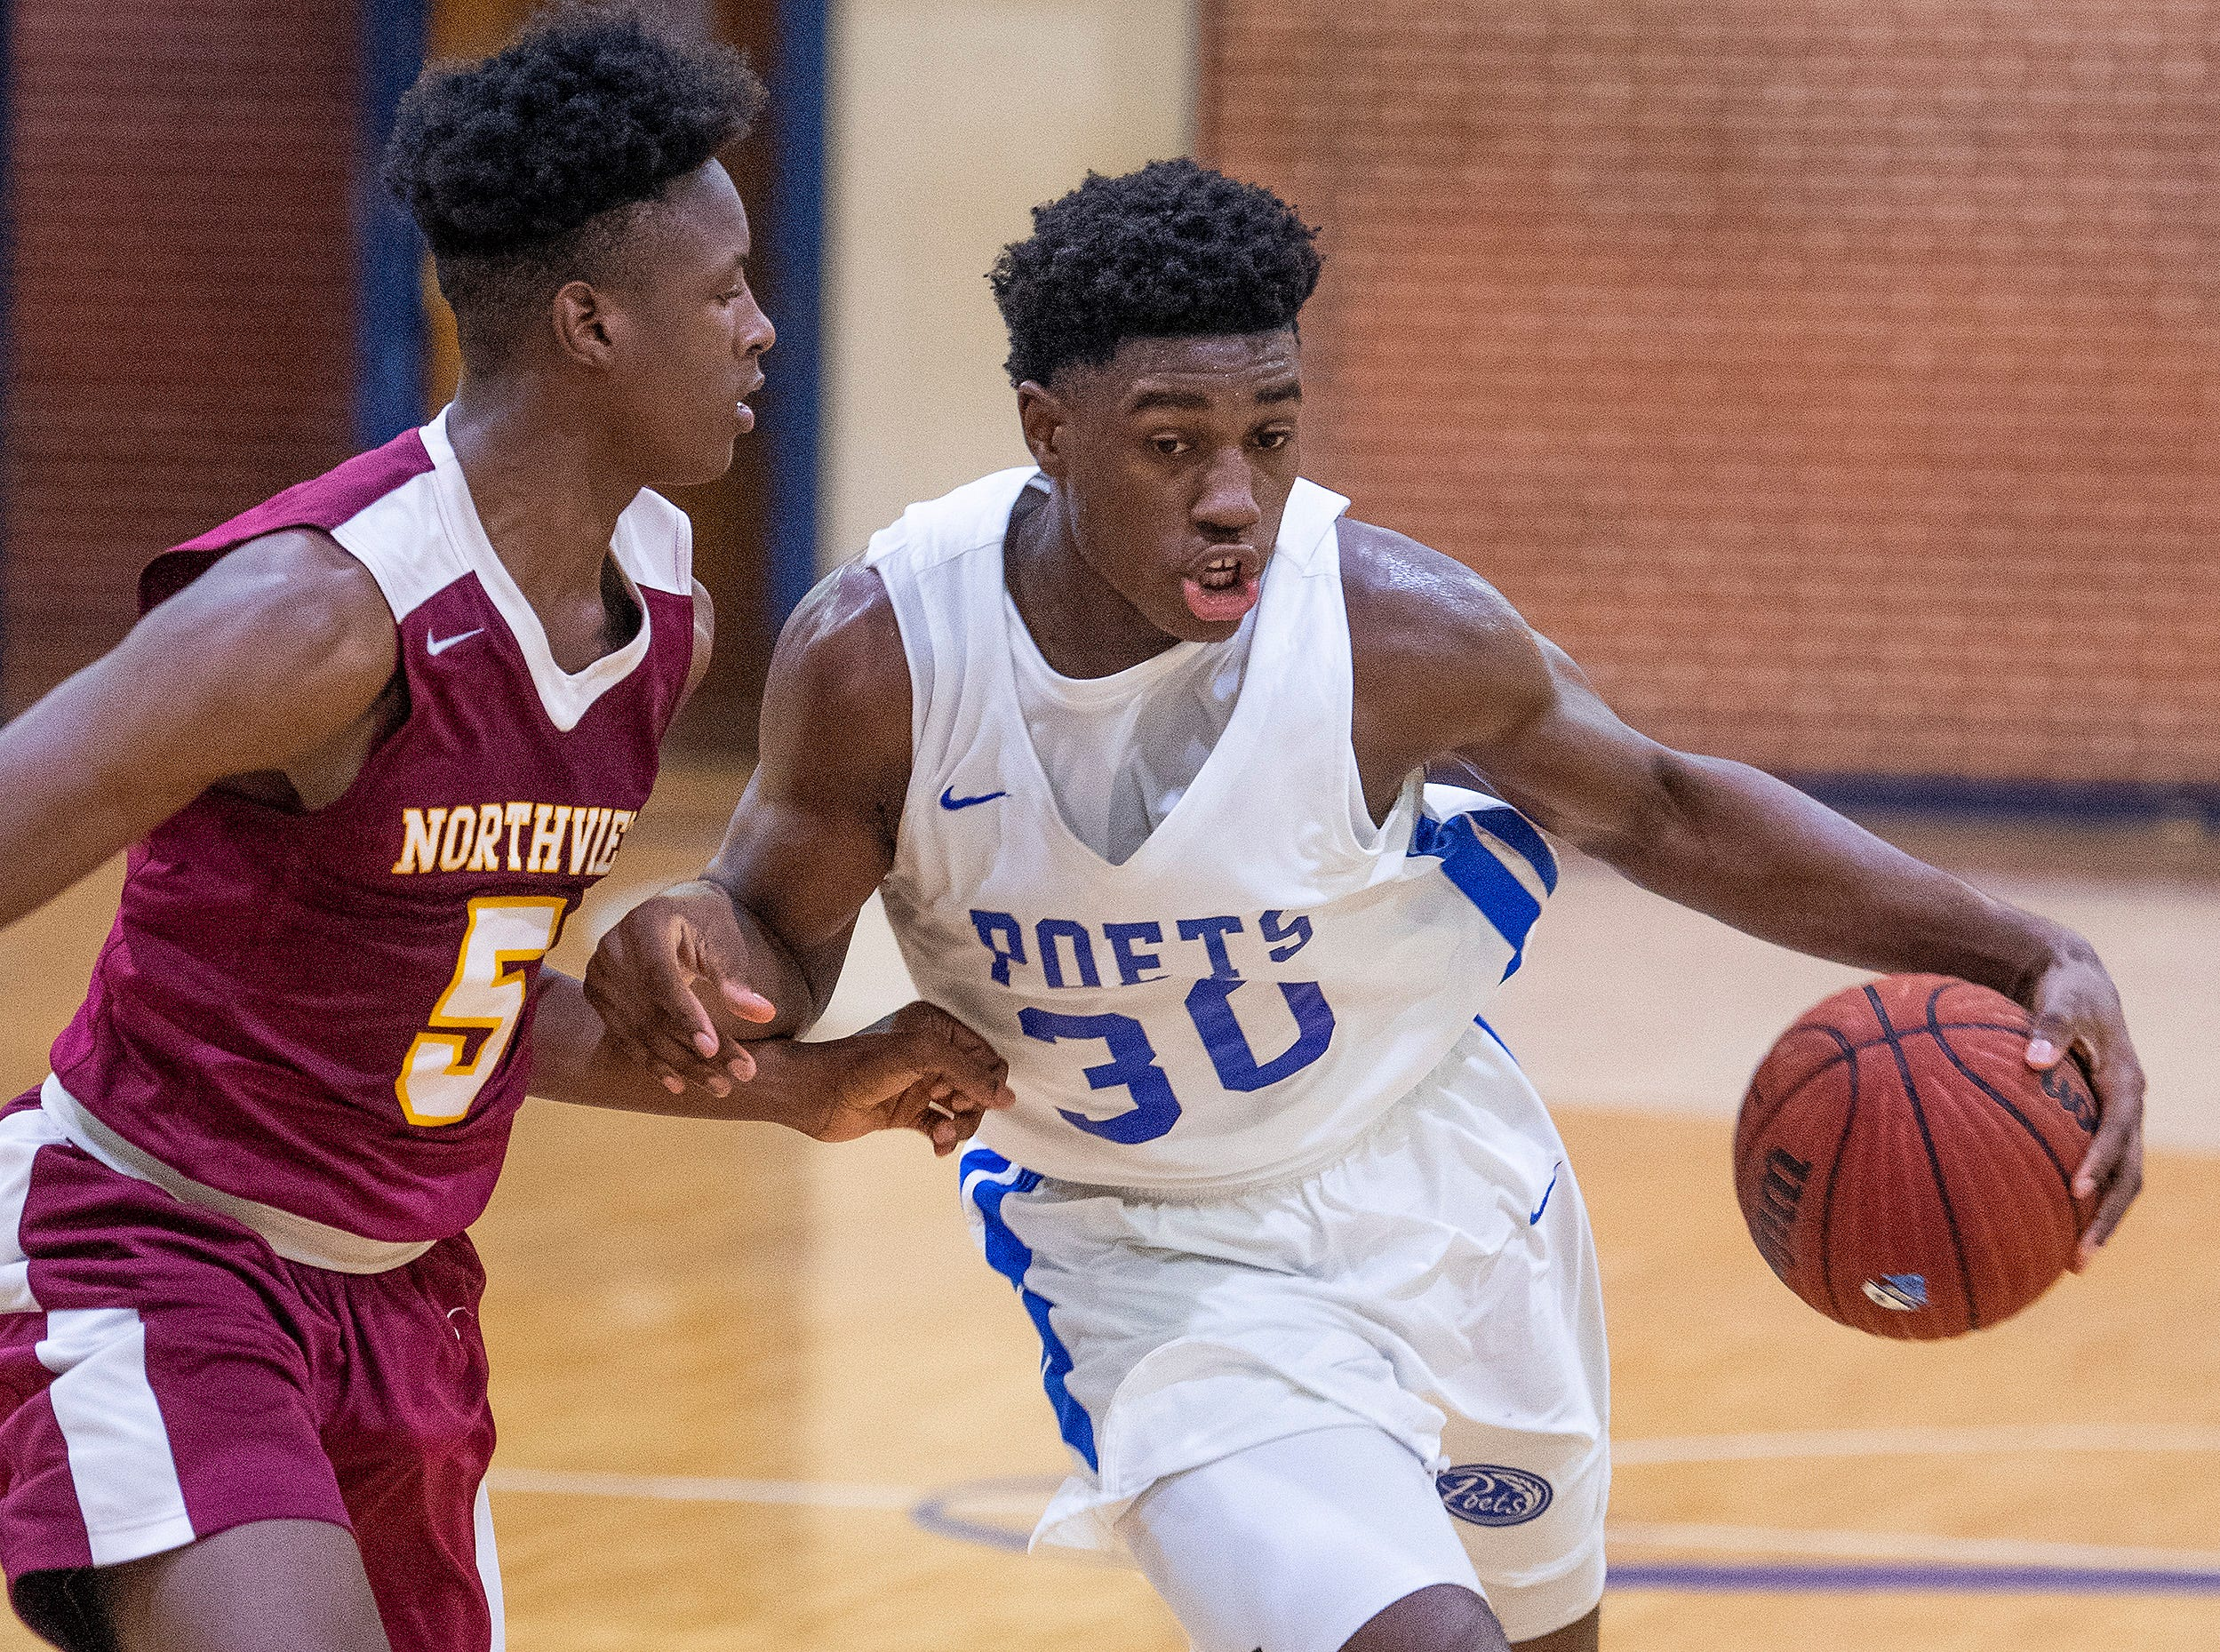 Lanier's Rongie Gordon (30) drives by Northview's Christopher Shakleford (5) at the Lanier campus in Montgomery, Ala., on Tuesday February 12, 2019.